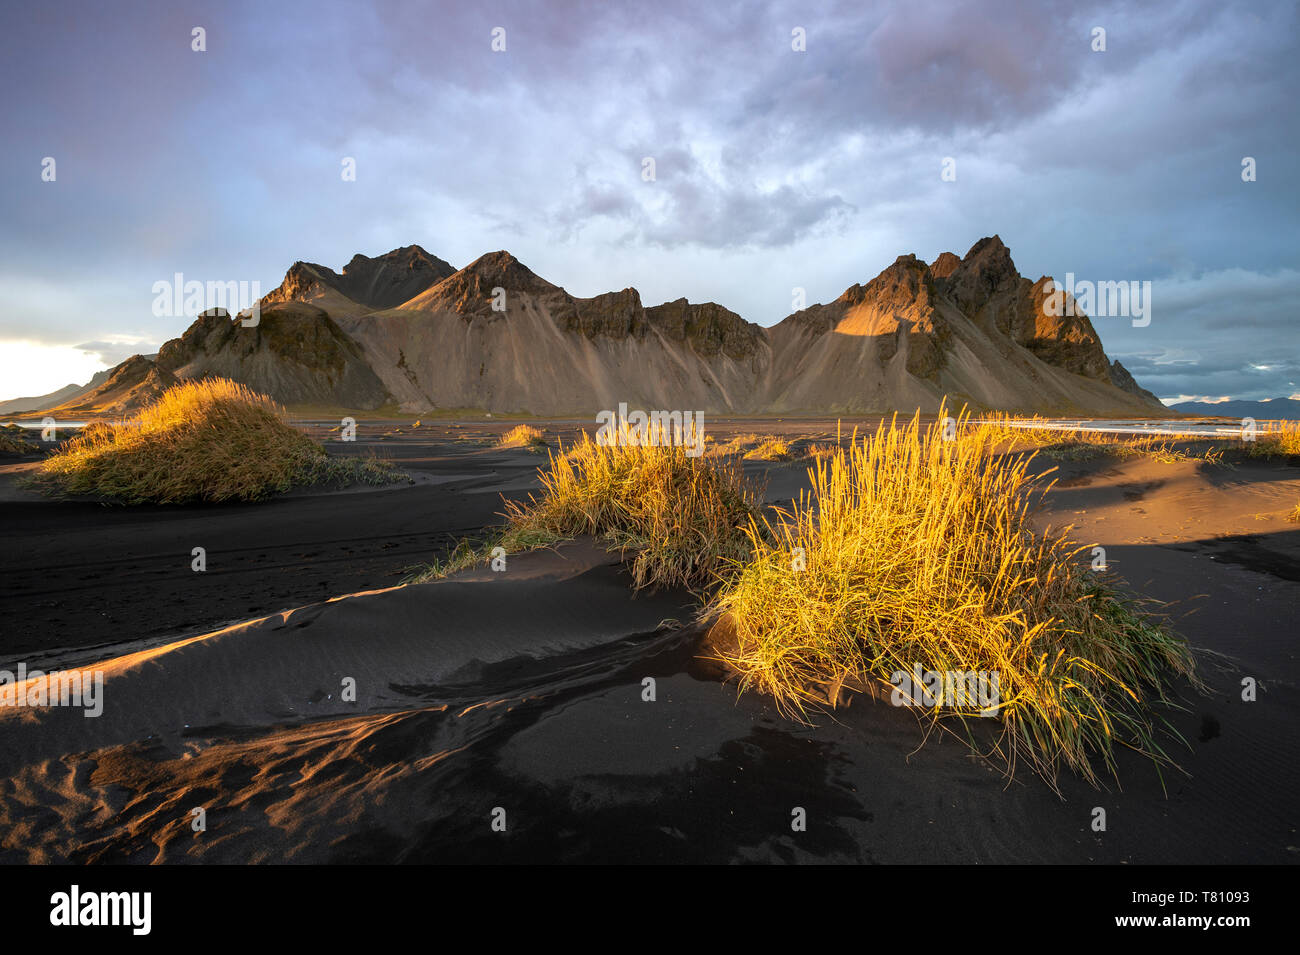 The view of the mountains of Vestrahorn from black volcanic sand beach with grasses at sunset, Stokksnes, South Iceland, Iceland, Polar Regions Stock Photo